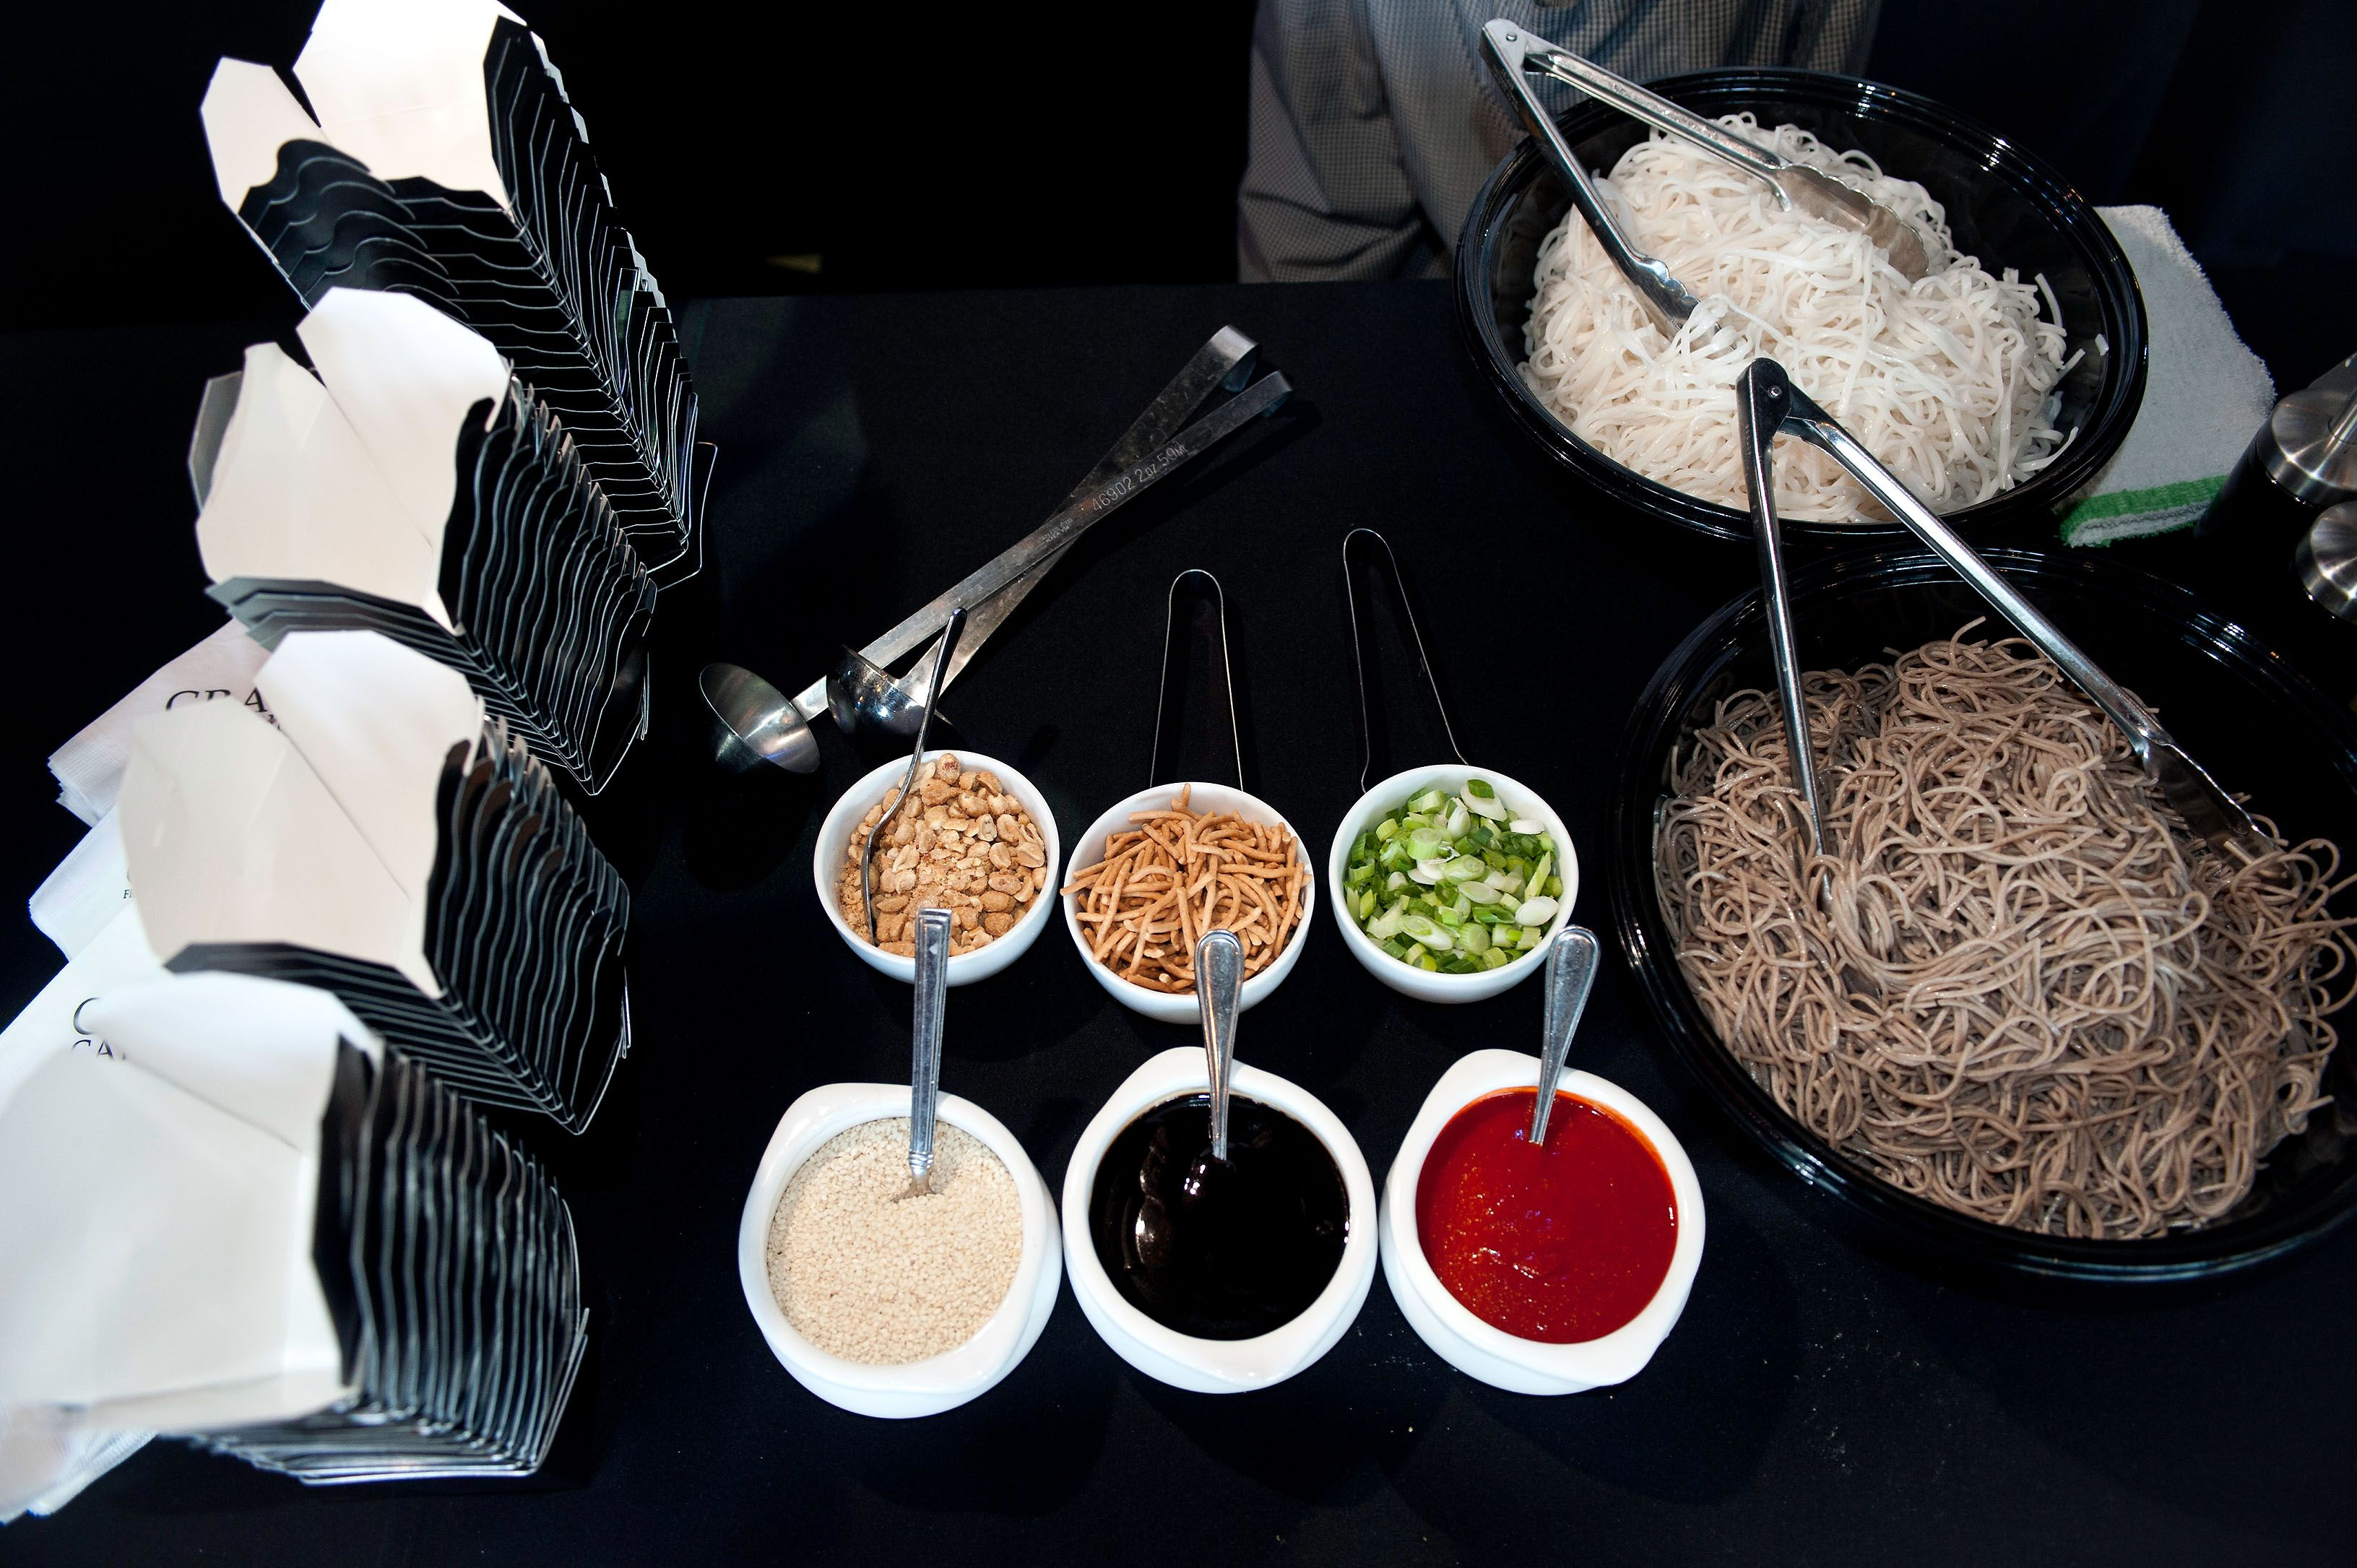 Interactive Asian Wok Station Crave Catering Minneapolis Mn Food Stations Food Cravings